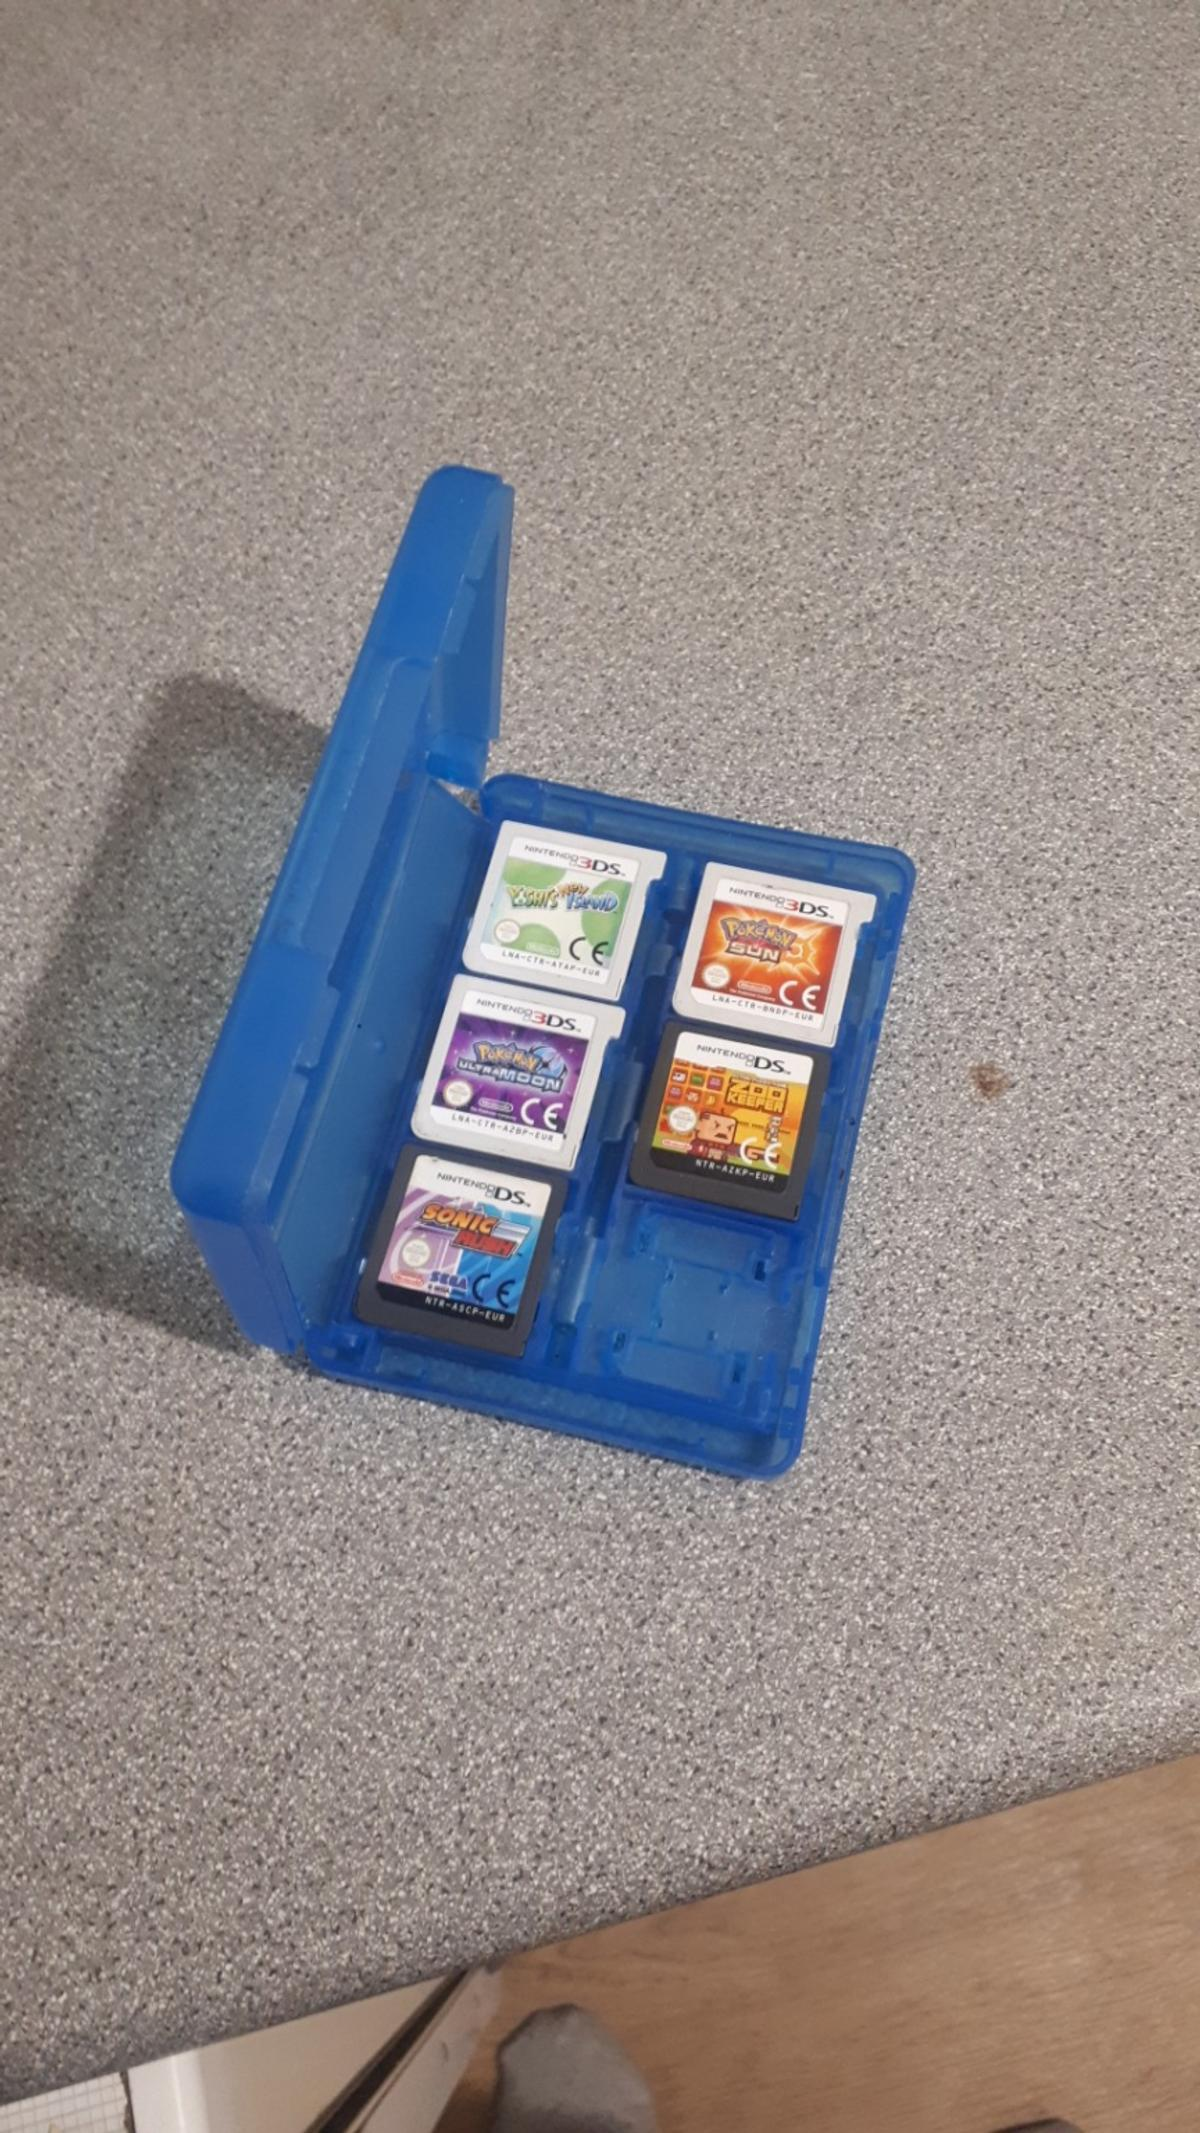 hi theres 3 nintendo 3ds games pokemon sun pokemon ultra moon yoshi's island an theres 8 nintendo ds games SONIC RUSH ZOO KEEPER STARWARS III SUPER MARIO BROS BATMAN the video game MADEN 08 SUPERMAN 3 LETS DRAW all in good working order but unfortunately theres know cases but all games in a carry case open to sensible offers many thanks luke